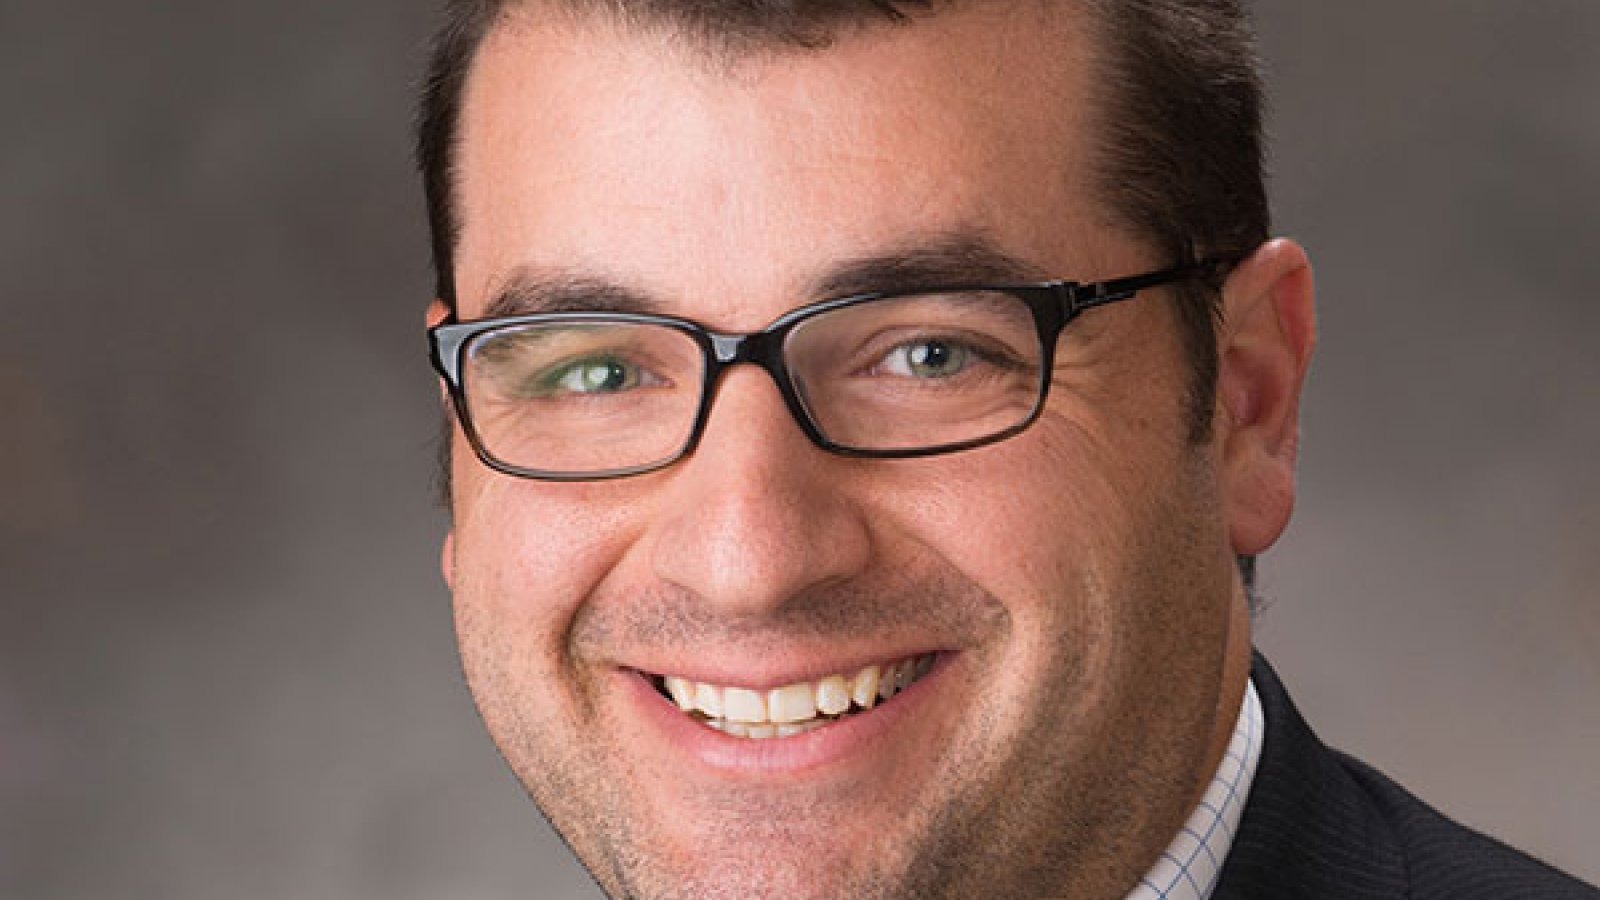 Mike Loehring, senior associate to the dean, died on Oct. 13 after a long battle with cancer. He was 37.